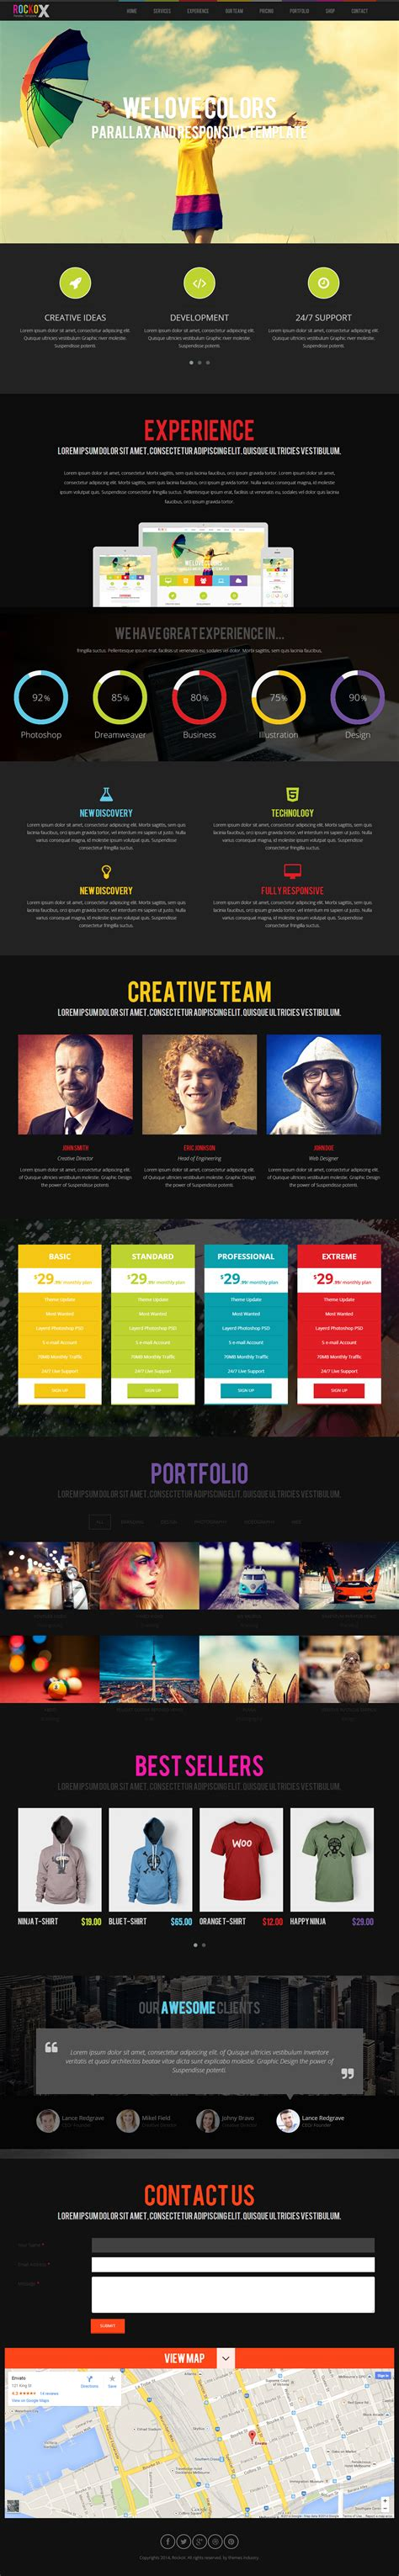 drupal themes responsive parallax free 25 best responsive parallax scrolling drupal themes 2014